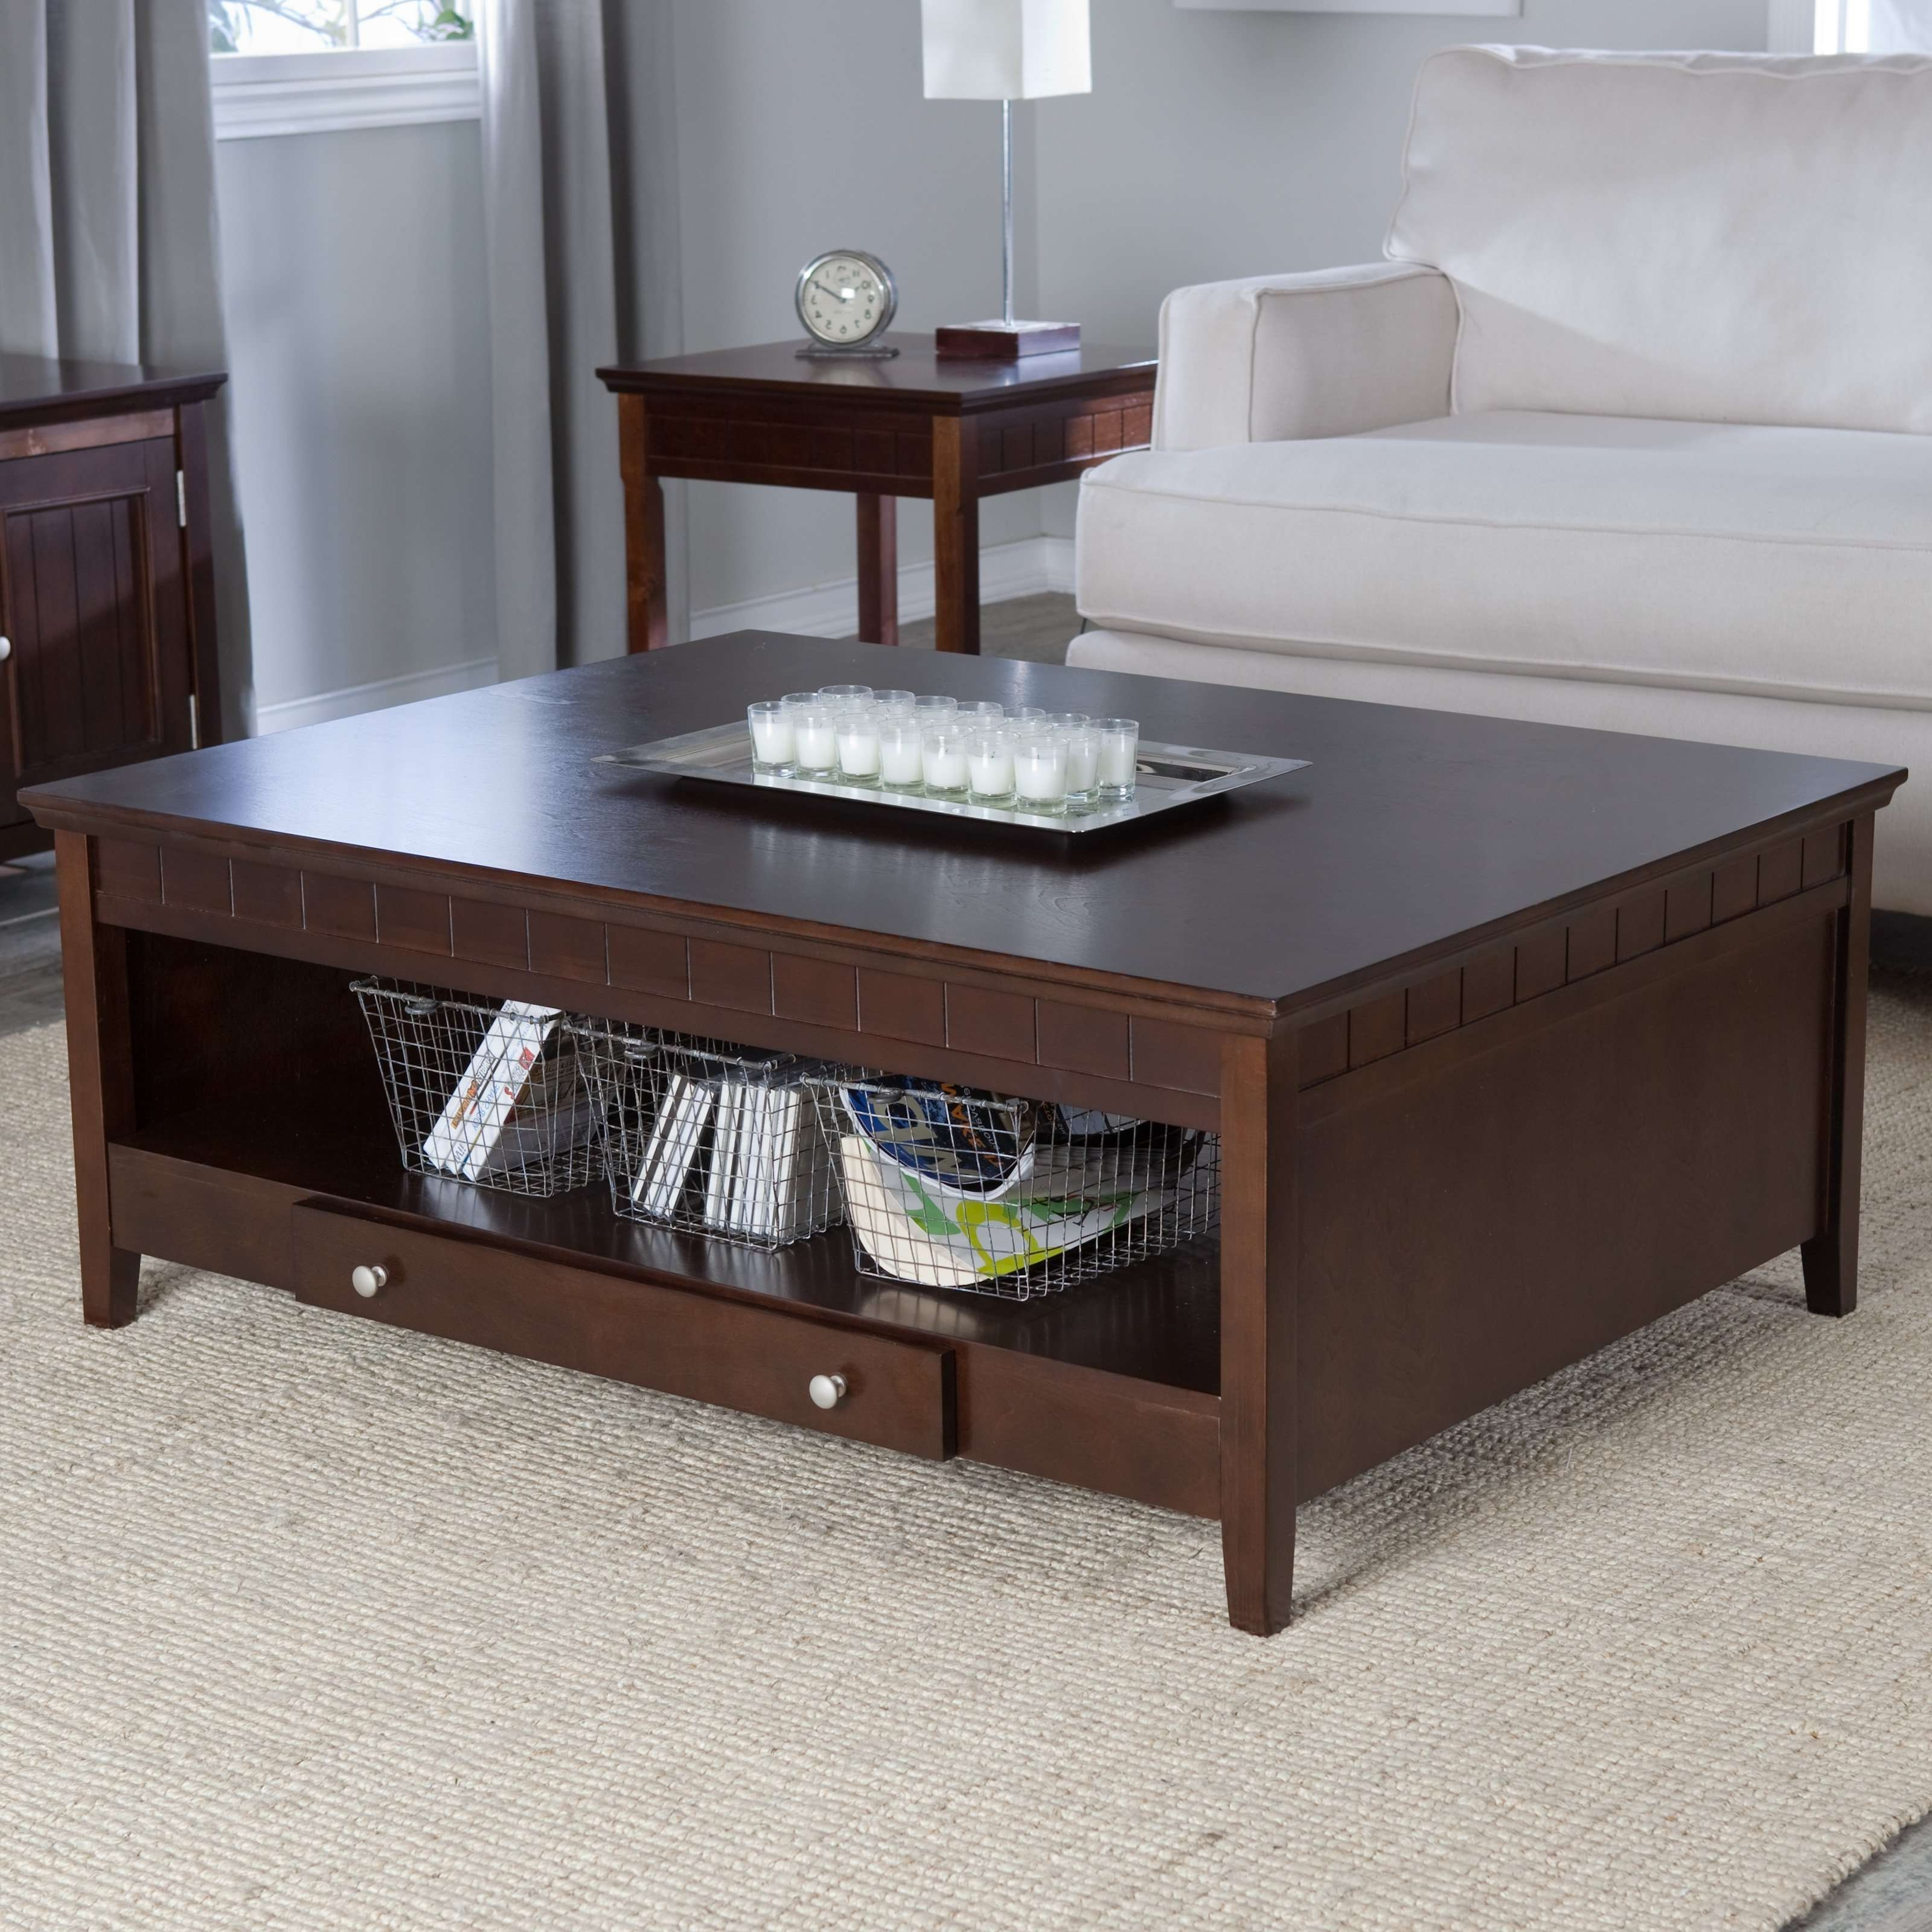 Most Popular Square Coffee Table With Storage Drawers Pertaining To Sofa Table With Storage Drawers Dark Wood Tables (View 9 of 20)